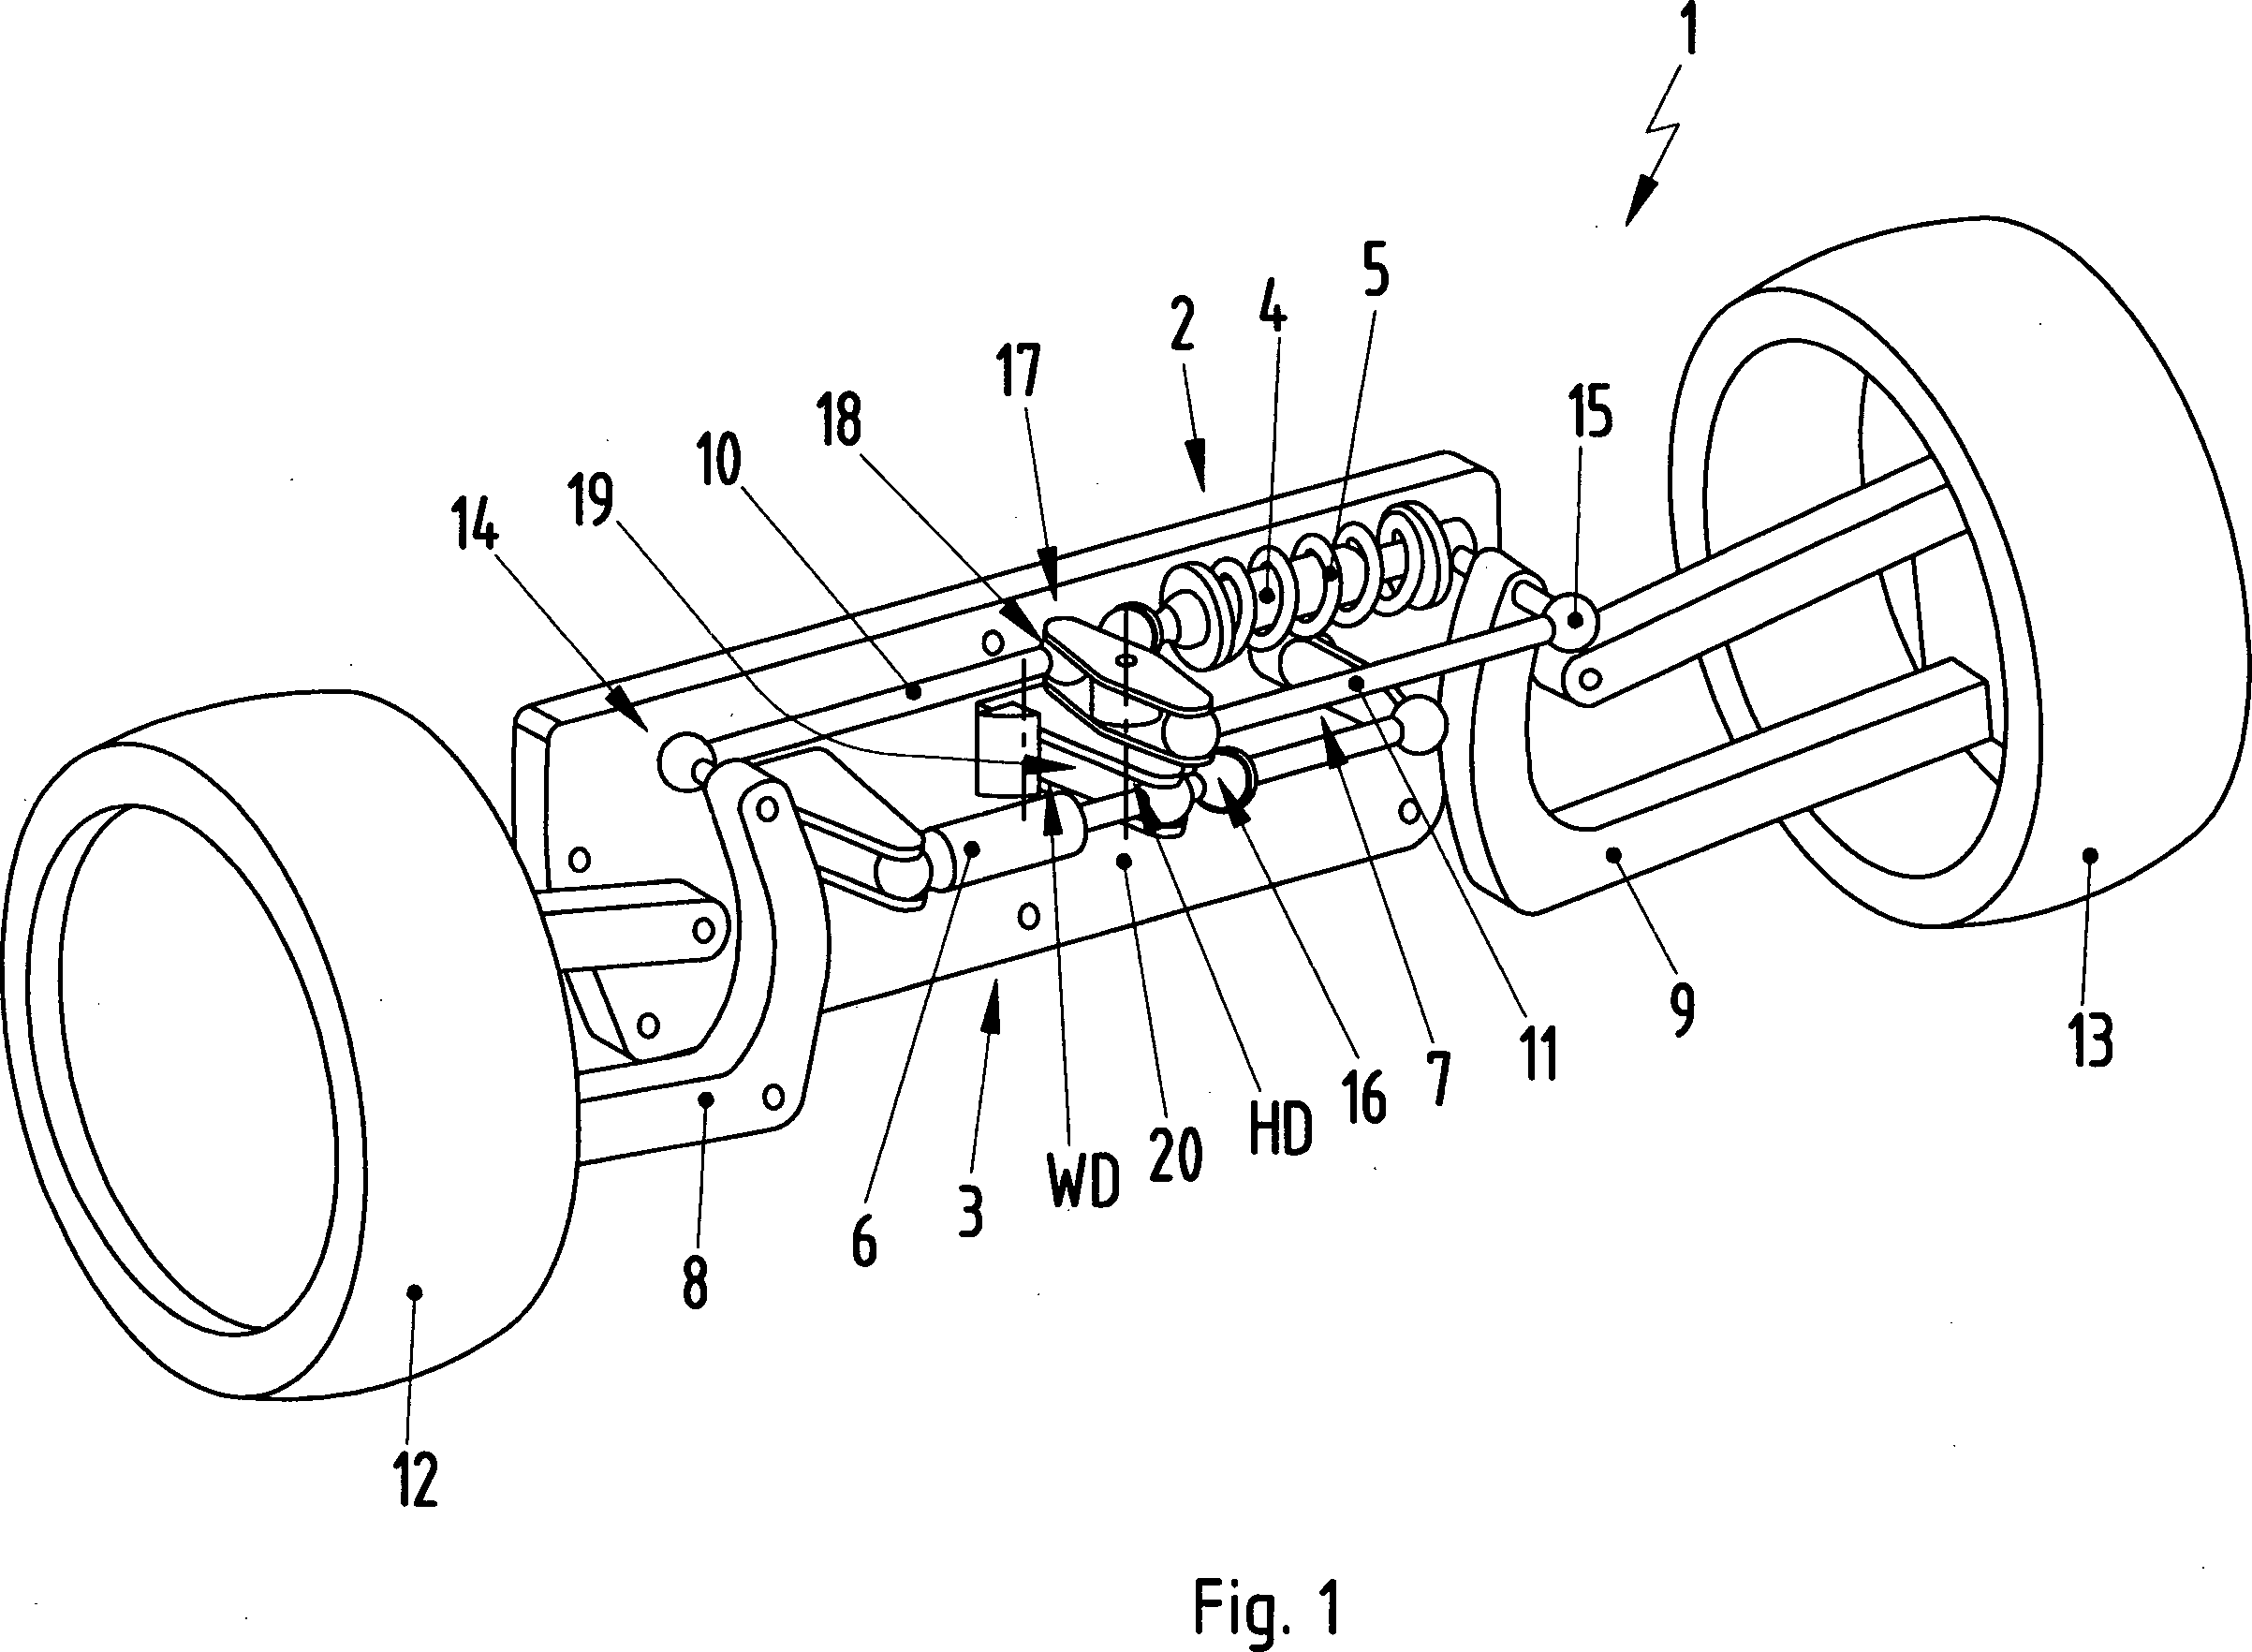 Porsche Drawing At Free For Personal Use 1986 Flat 6 Engine Diagram 2405x1764 919 Hybrid Rear Suspension Drracings Blog